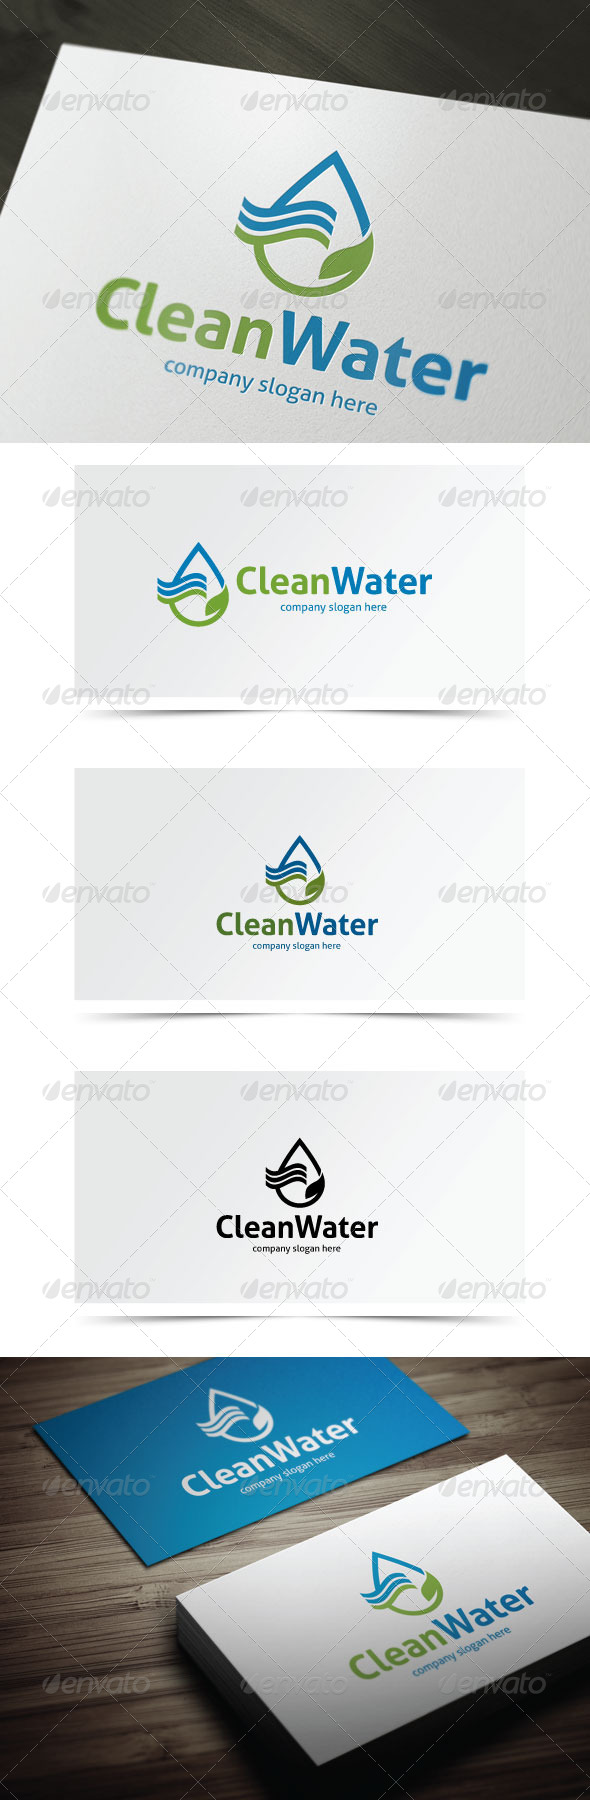 GraphicRiver Clean Water 6124303